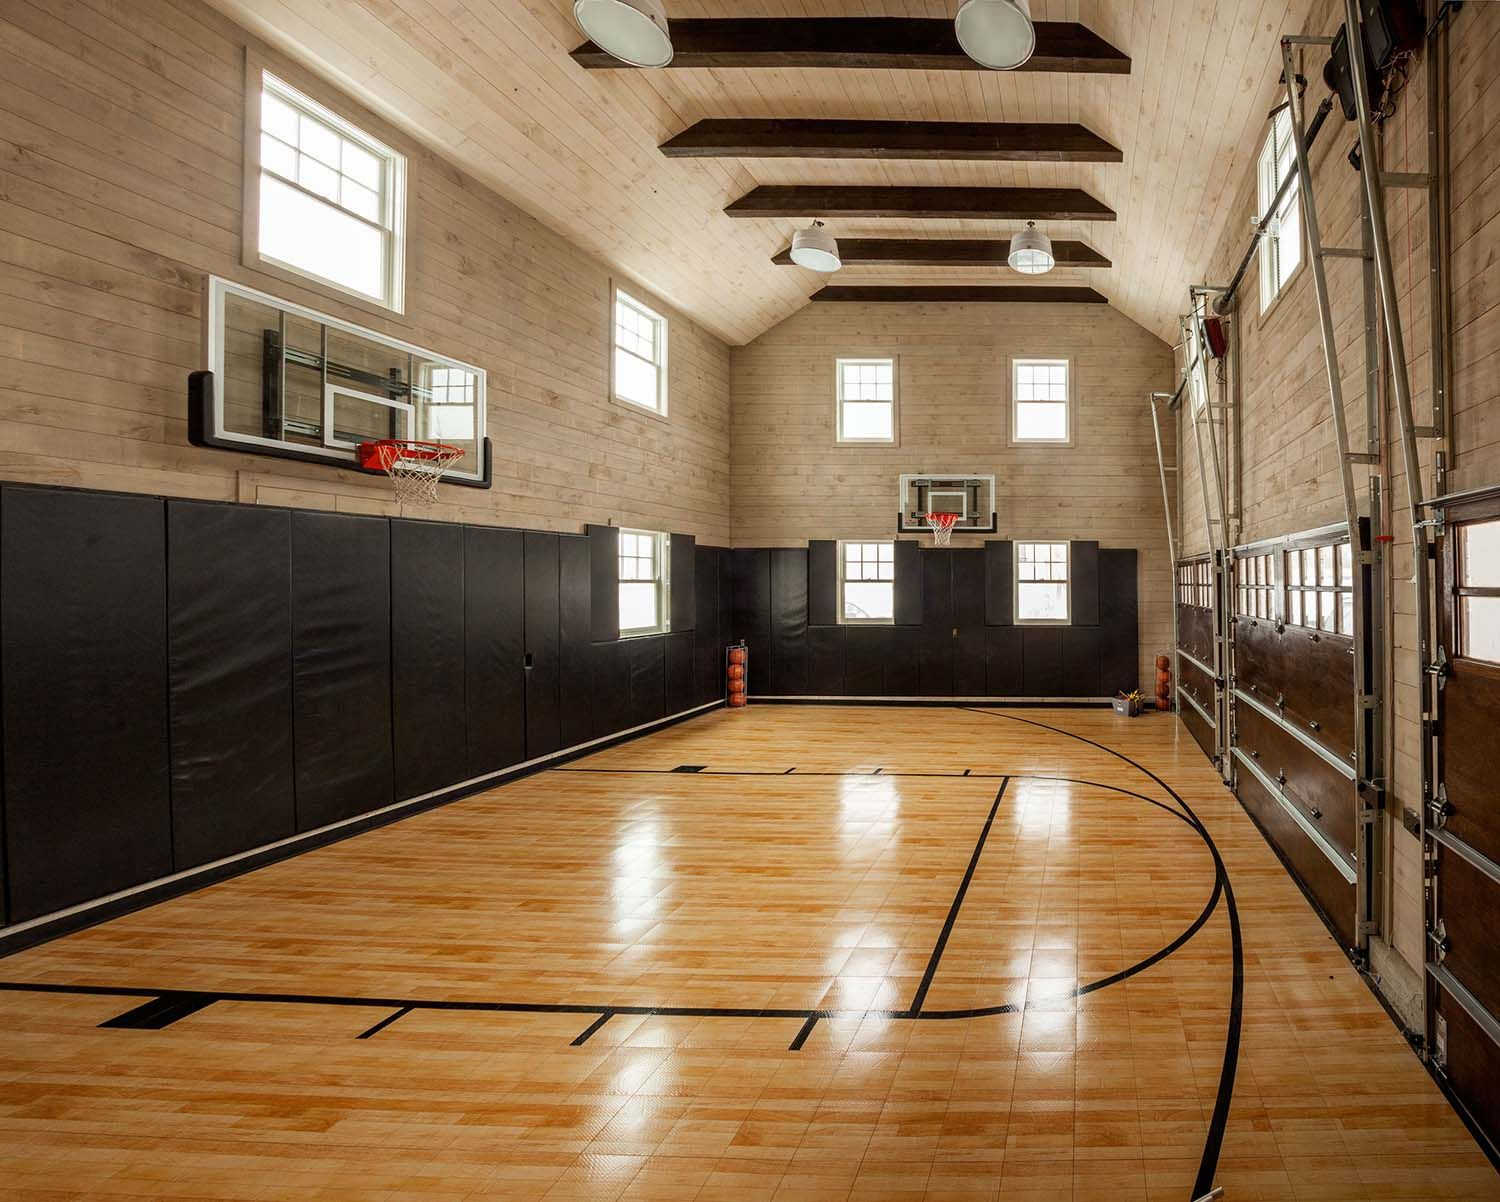 Sumptuous Colonial Home With Traditional Details In New Cannan Indoor Sports Court Home Basketball Court House And Home Magazine